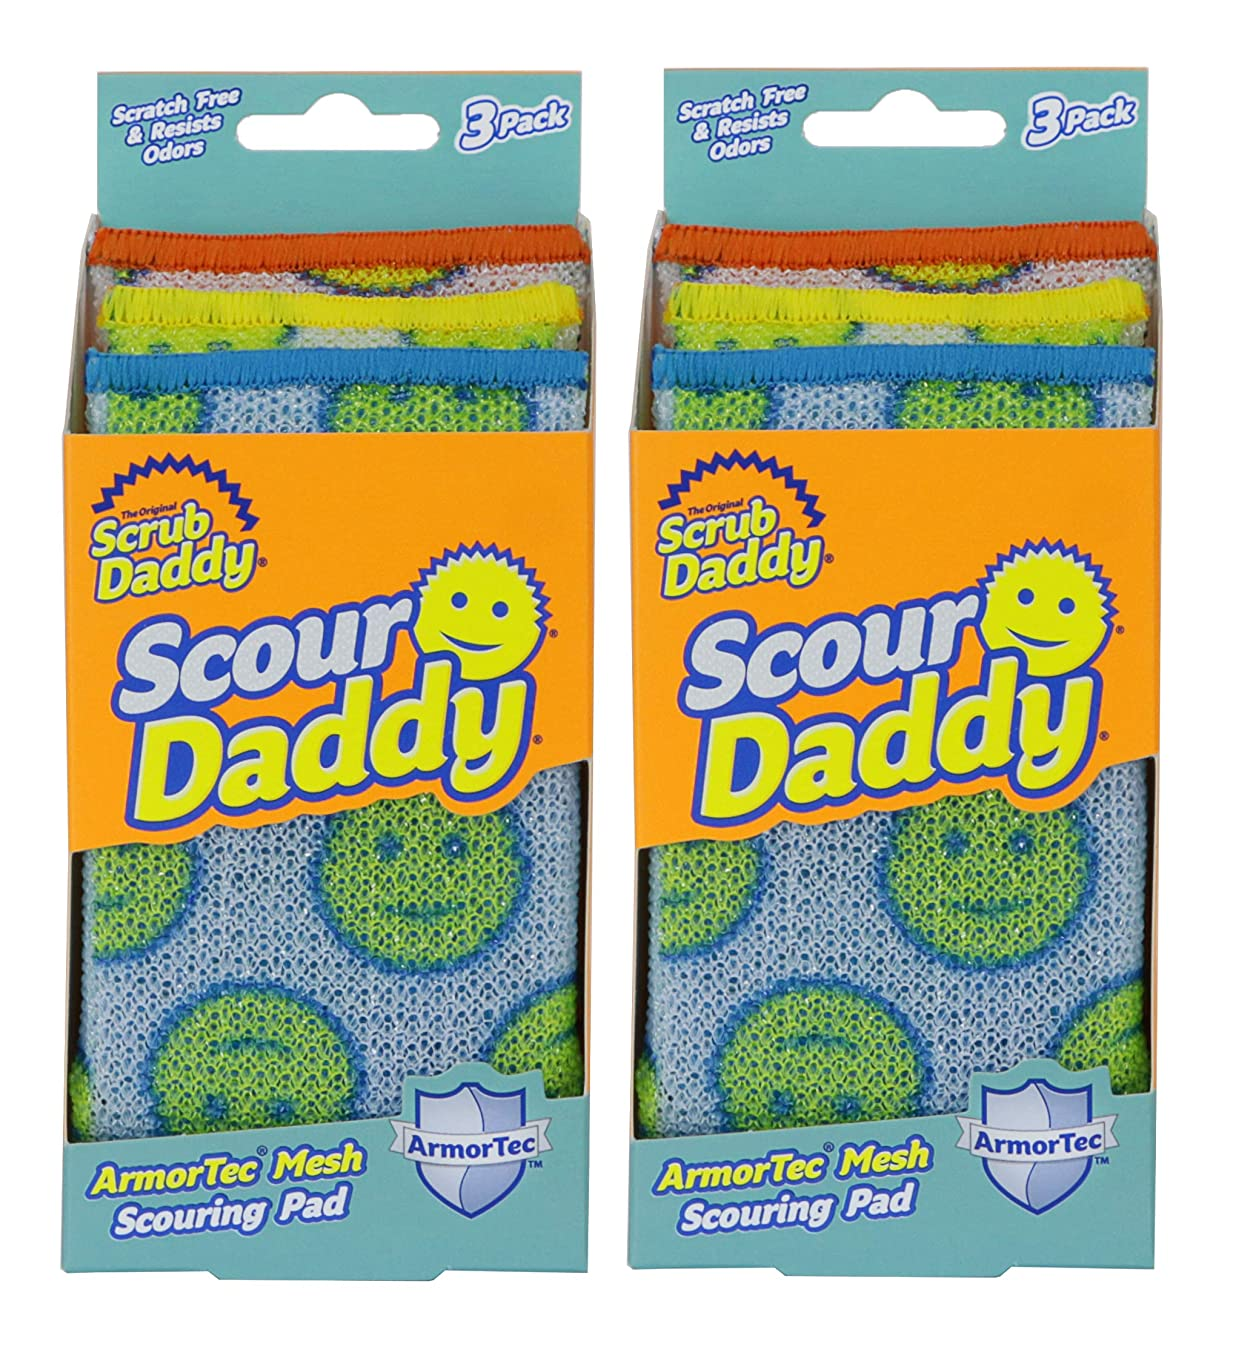 Scrub Daddy - Scour Daddy Scouring Pad - Scratch Free and Odor Resistant - 2 Pack of 3 Count (6 Total)